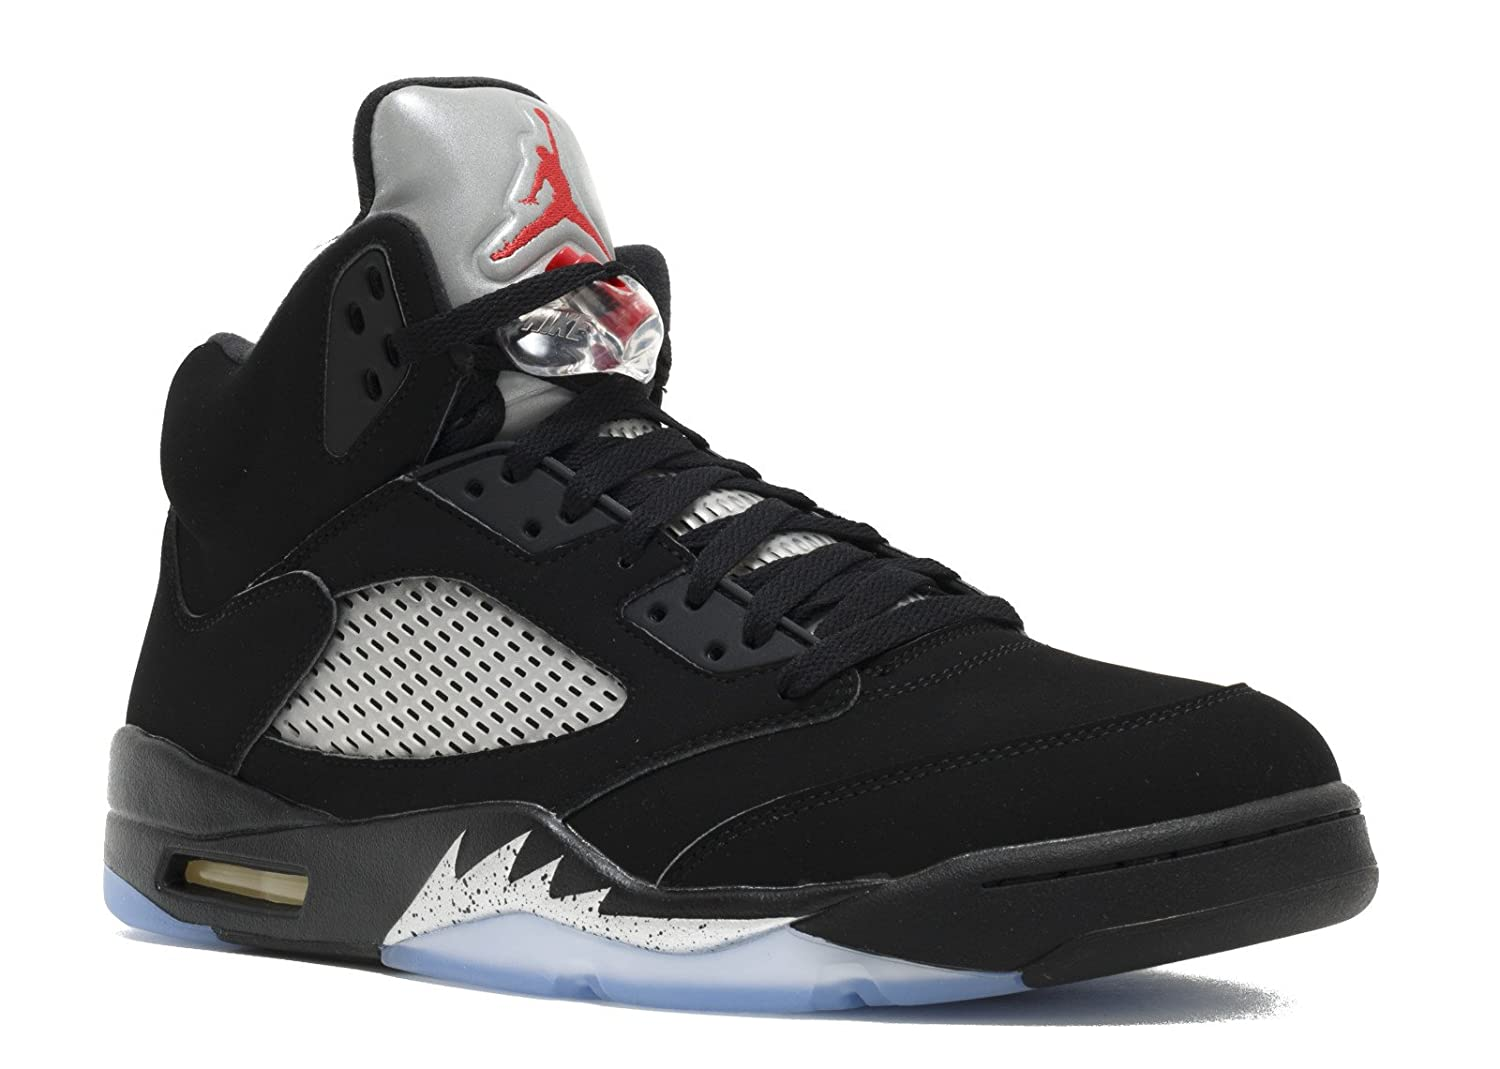 promo code 0924e 4c597 Nike Mens AIR JORDAN 5 RETRO OG, BLACK/FIRE RED-METALLIC SILVER-WHITE, 15